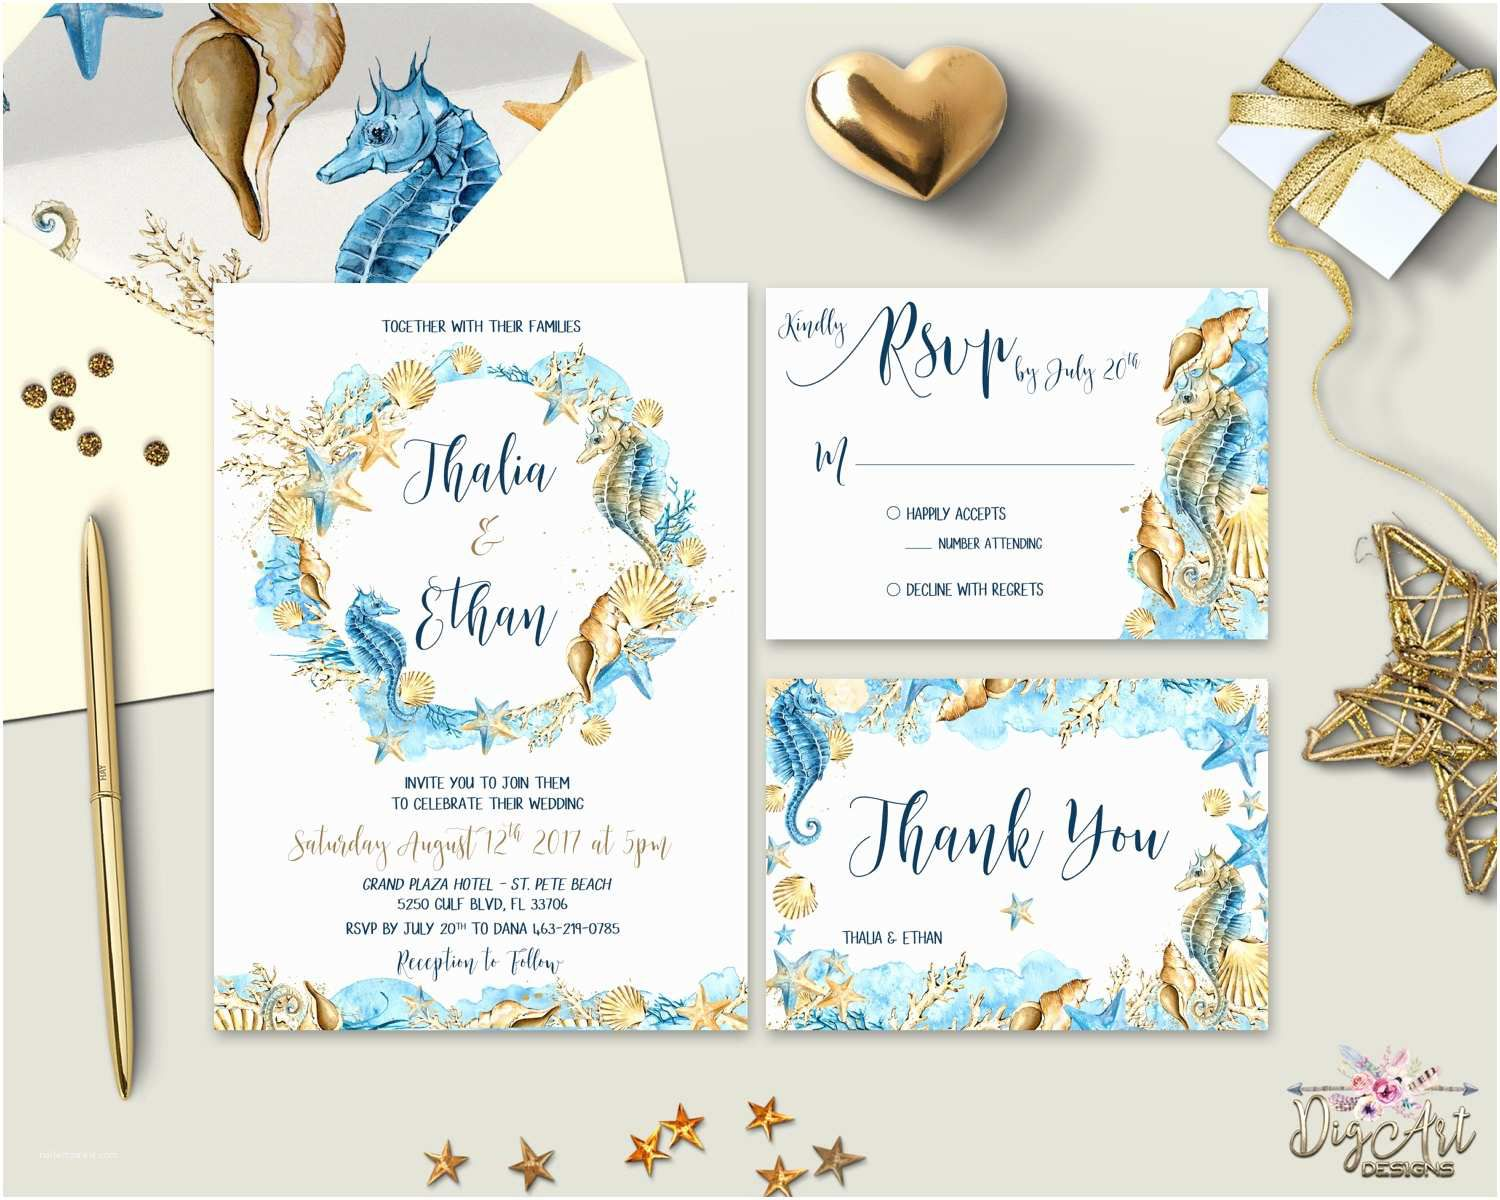 007 Staggering Beach Wedding Invitation Template High Def  Templates Free Download For WordFull